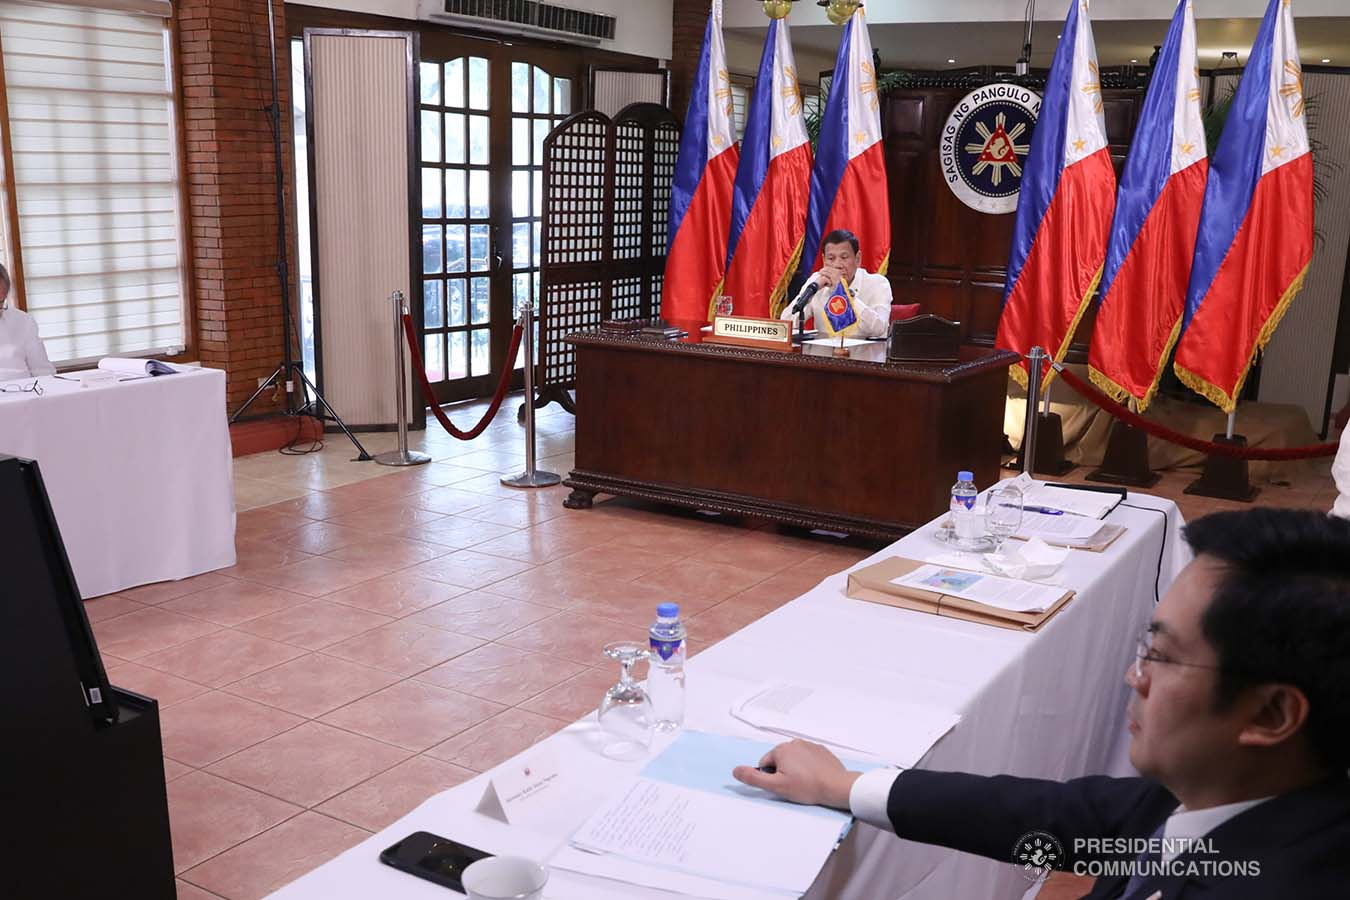 President Rodrigo Roa Duterte joins other leaders from the Association of Southeast Asian Nations (ASEAN) member countries during the special ASEAN Summit on Covid-19 video conference at the Malago Clubhouse in Malacañang on April 14, 2020. TOTO LOZANO/PRESIDENTIAL PHOTOS